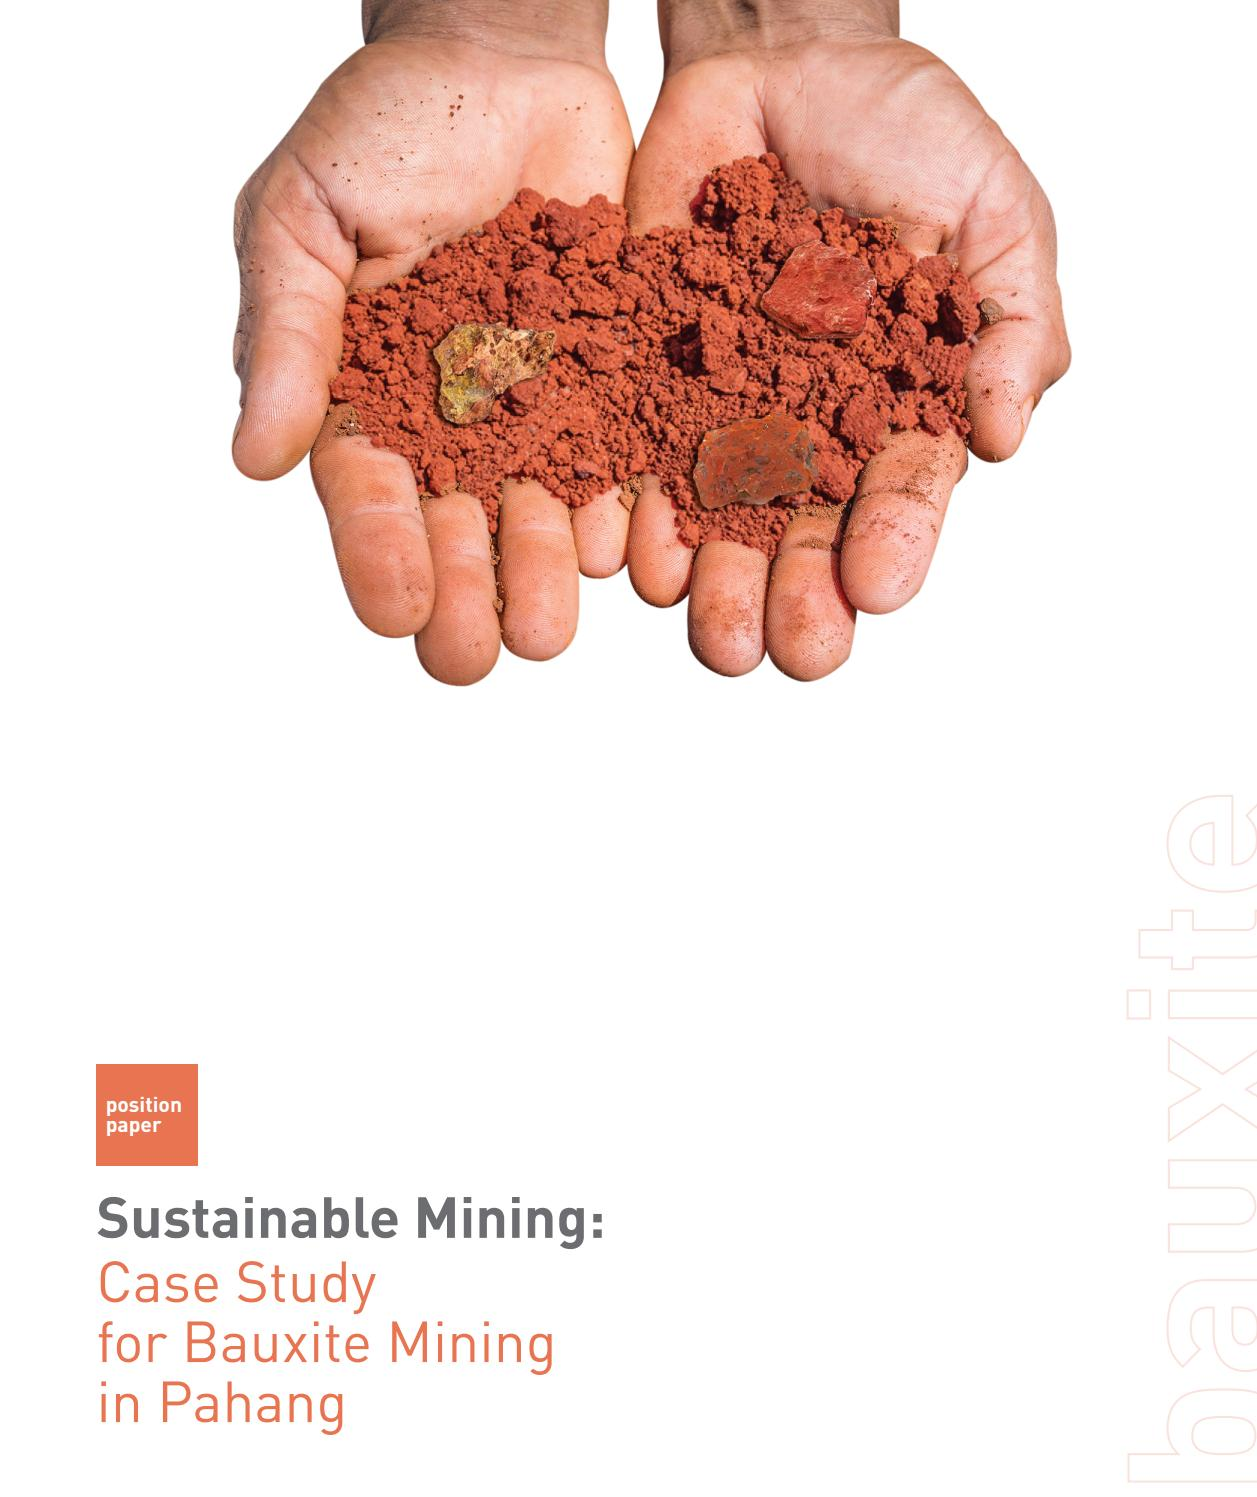 Sustainable Mining: Case Study for Bauxite Mining in Pahang